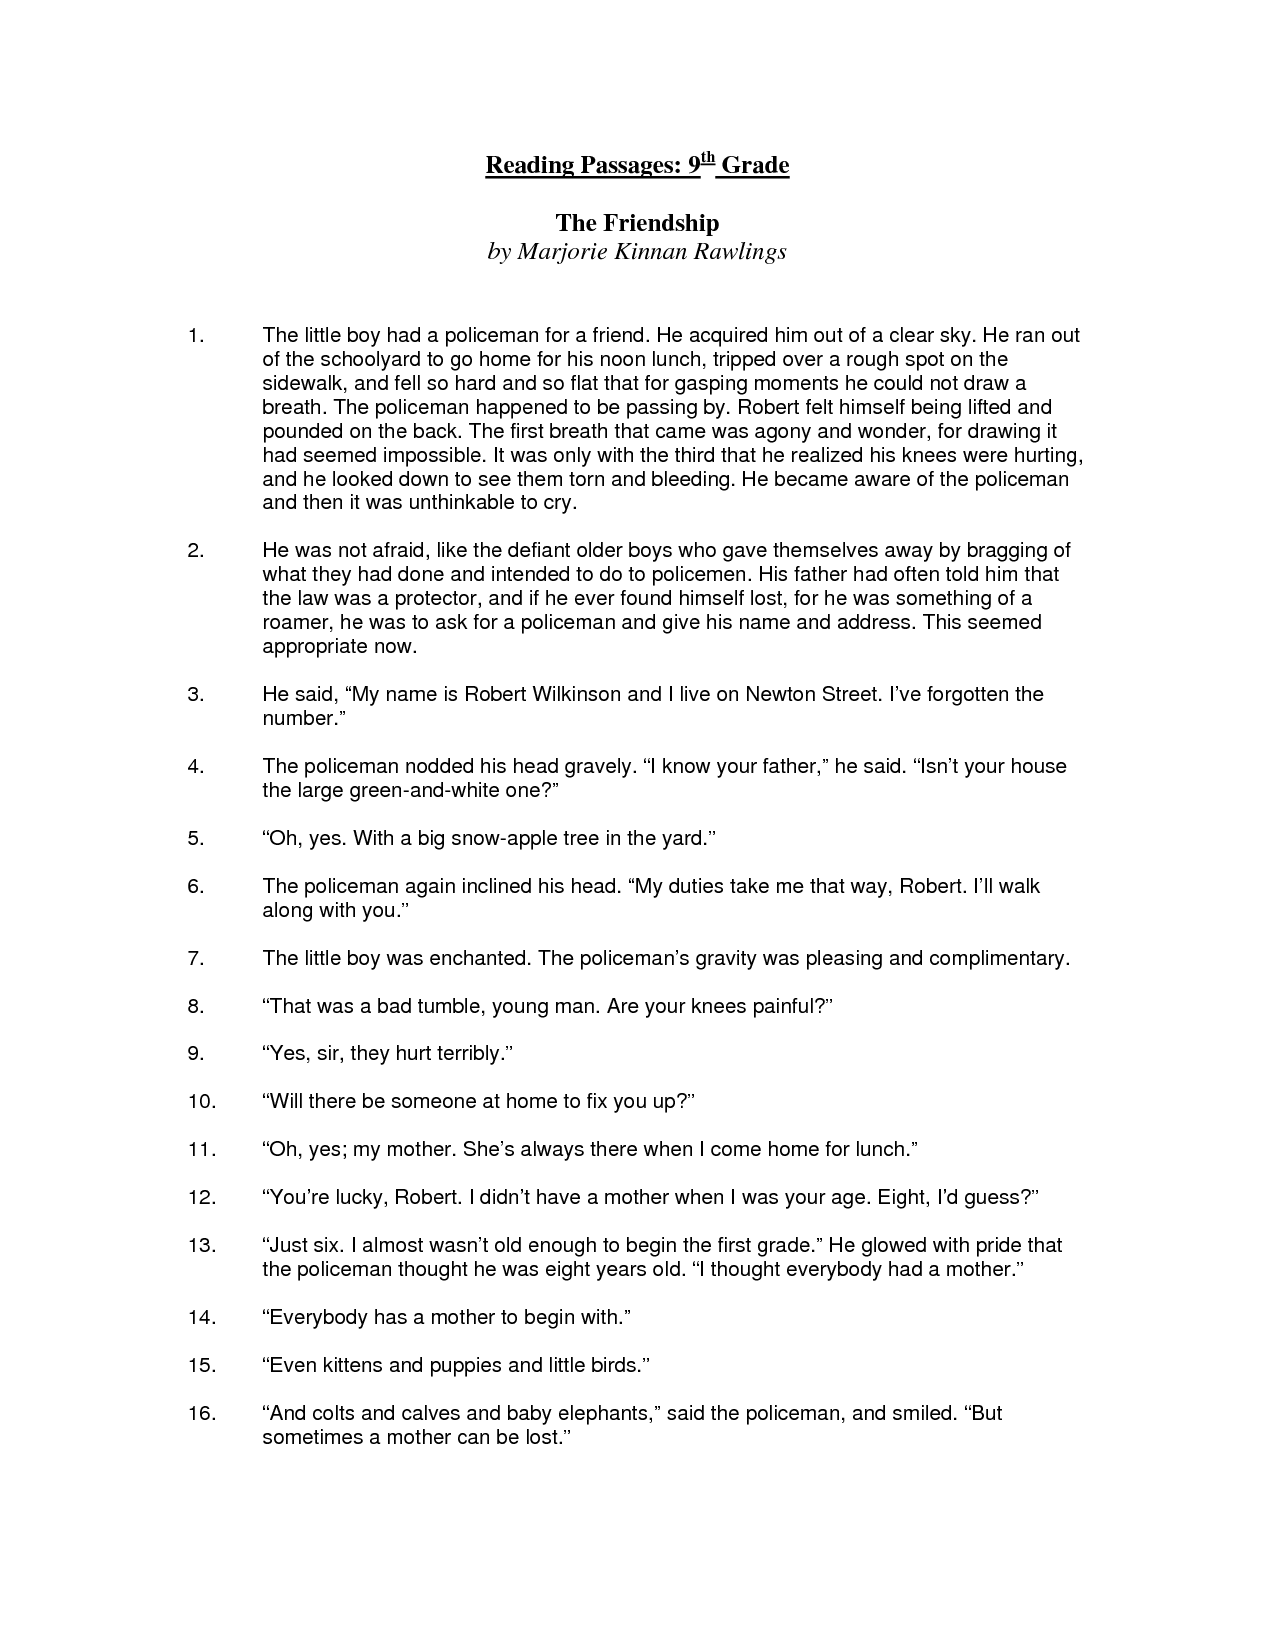 Printables Grammar Worksheets 9th Grade 8 best images of 9th grade reading worksheets printable comprehension worksheets